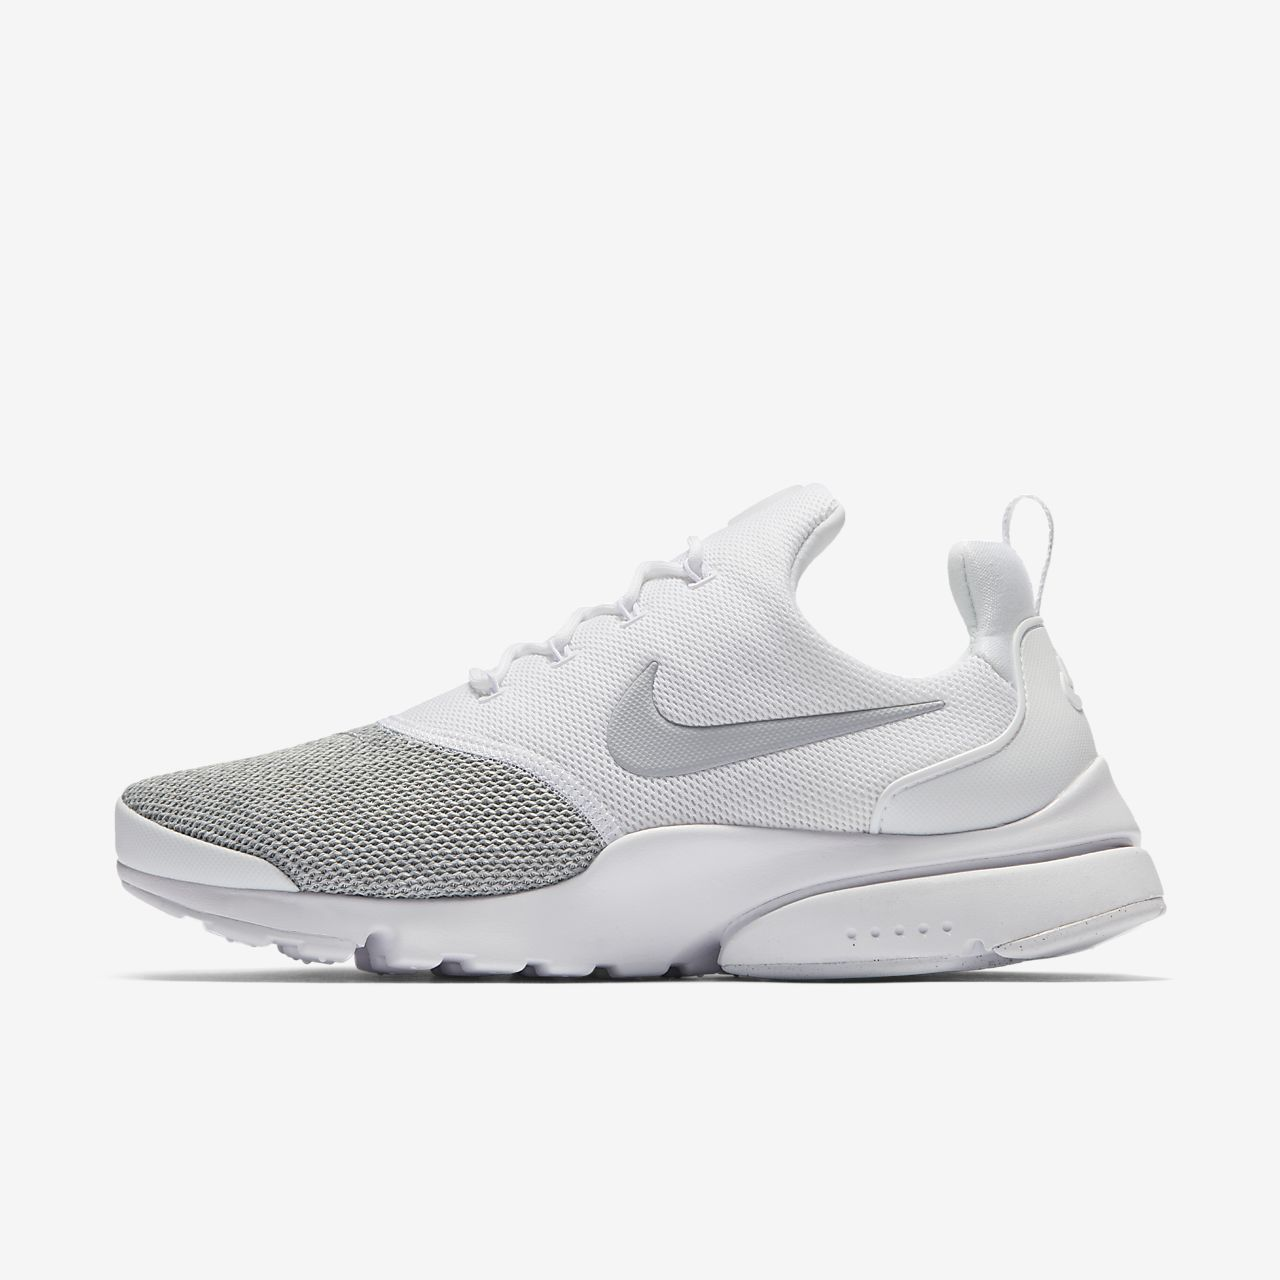 ... Chaussure Nike Presto Fly SE pour Femme